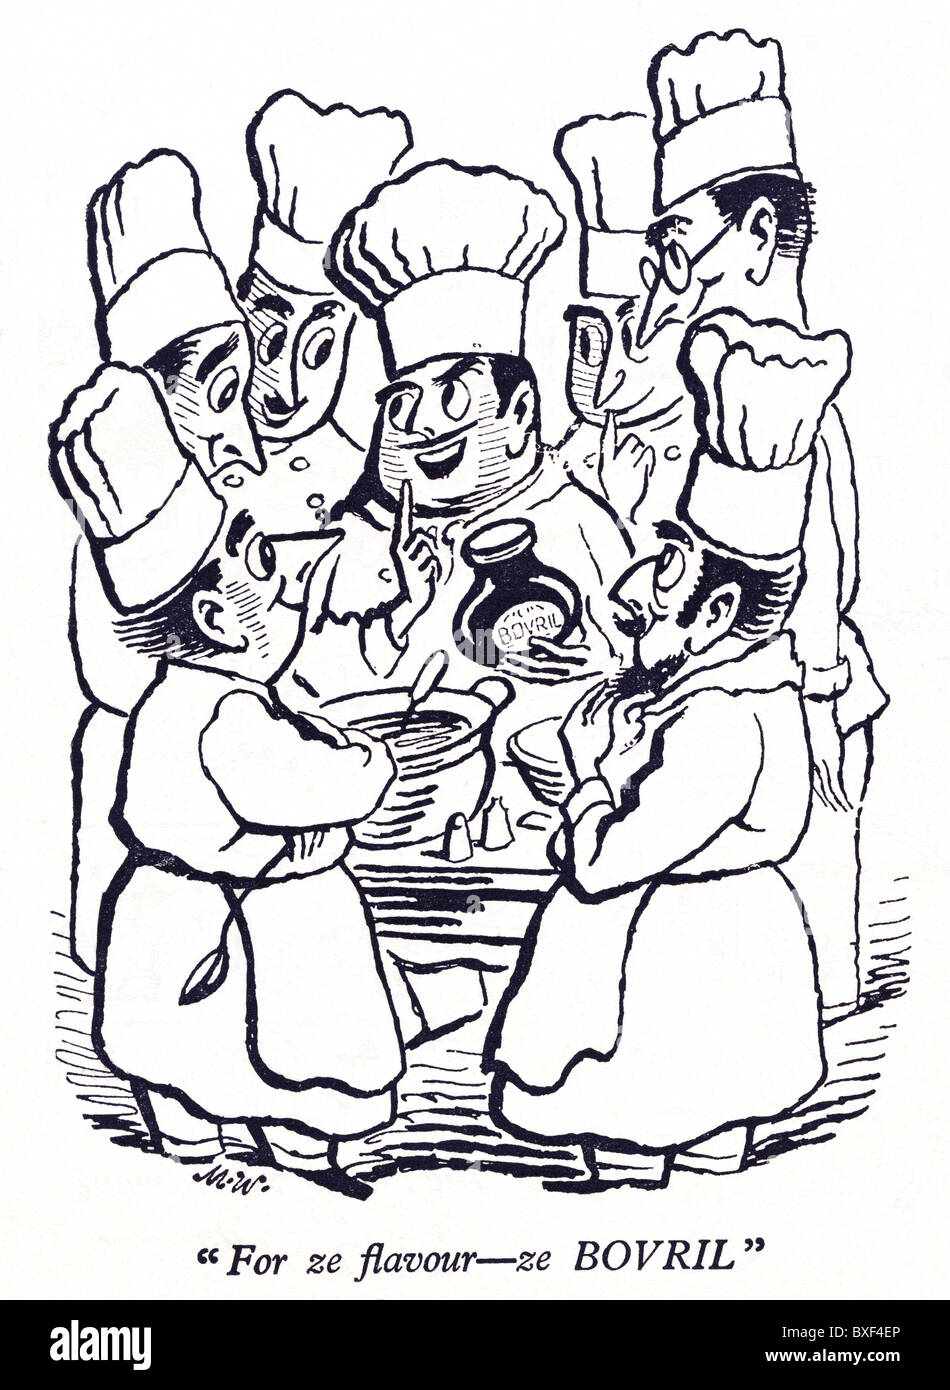 1946 advertisement for Bovril featuring French chefs - Stock Image